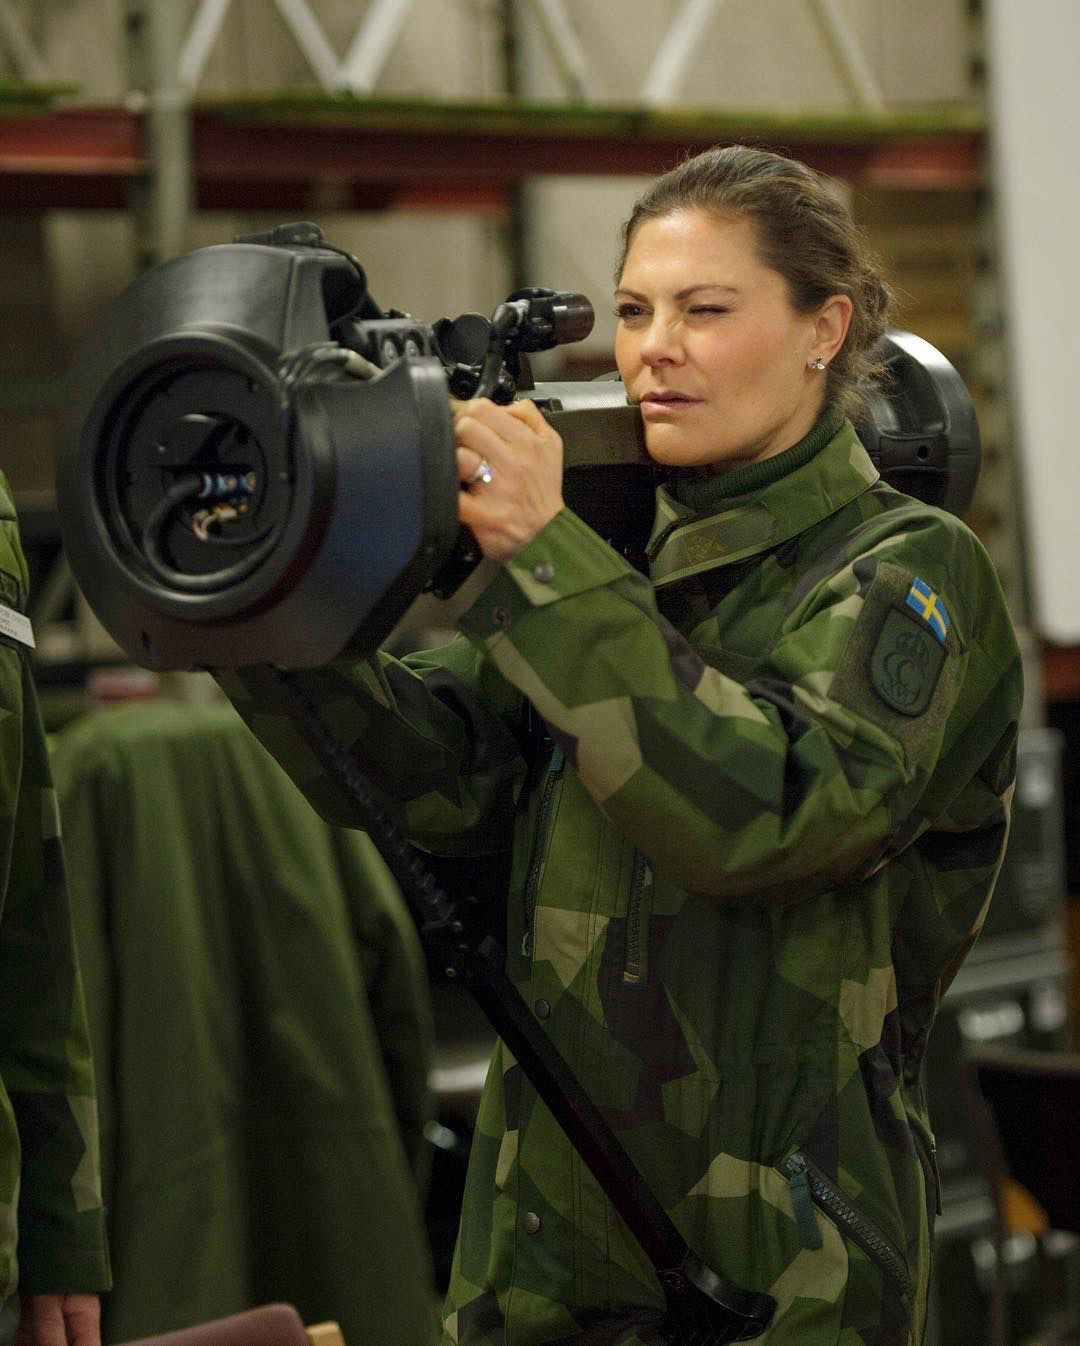 Royal in Camo! See Princess Victoria of Sweden Suit Up to